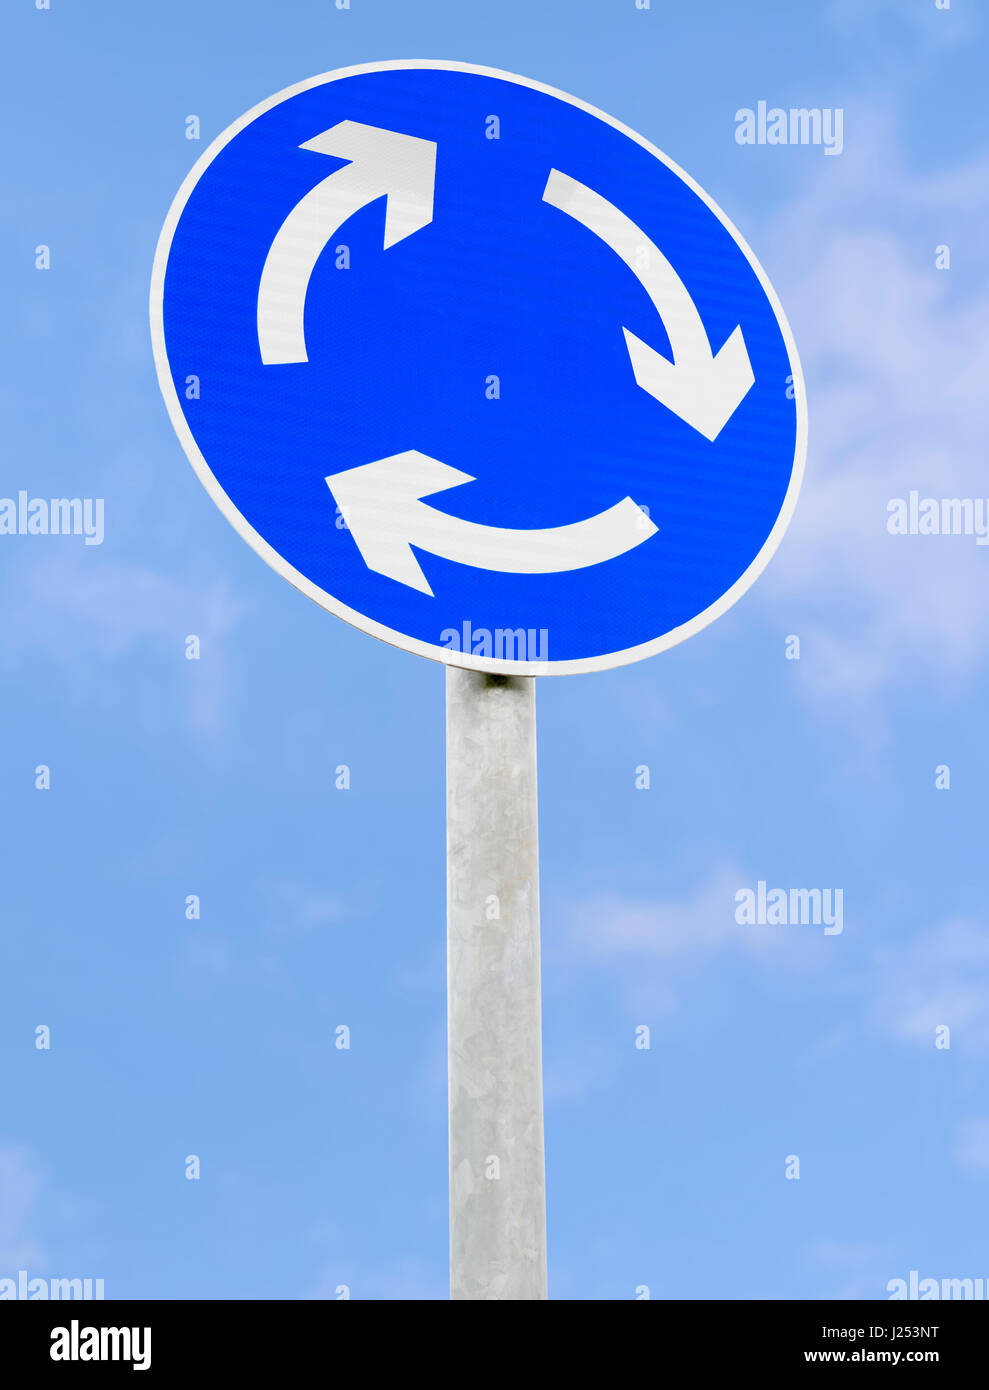 Mini roundabout road sign in the UK. - Stock Image